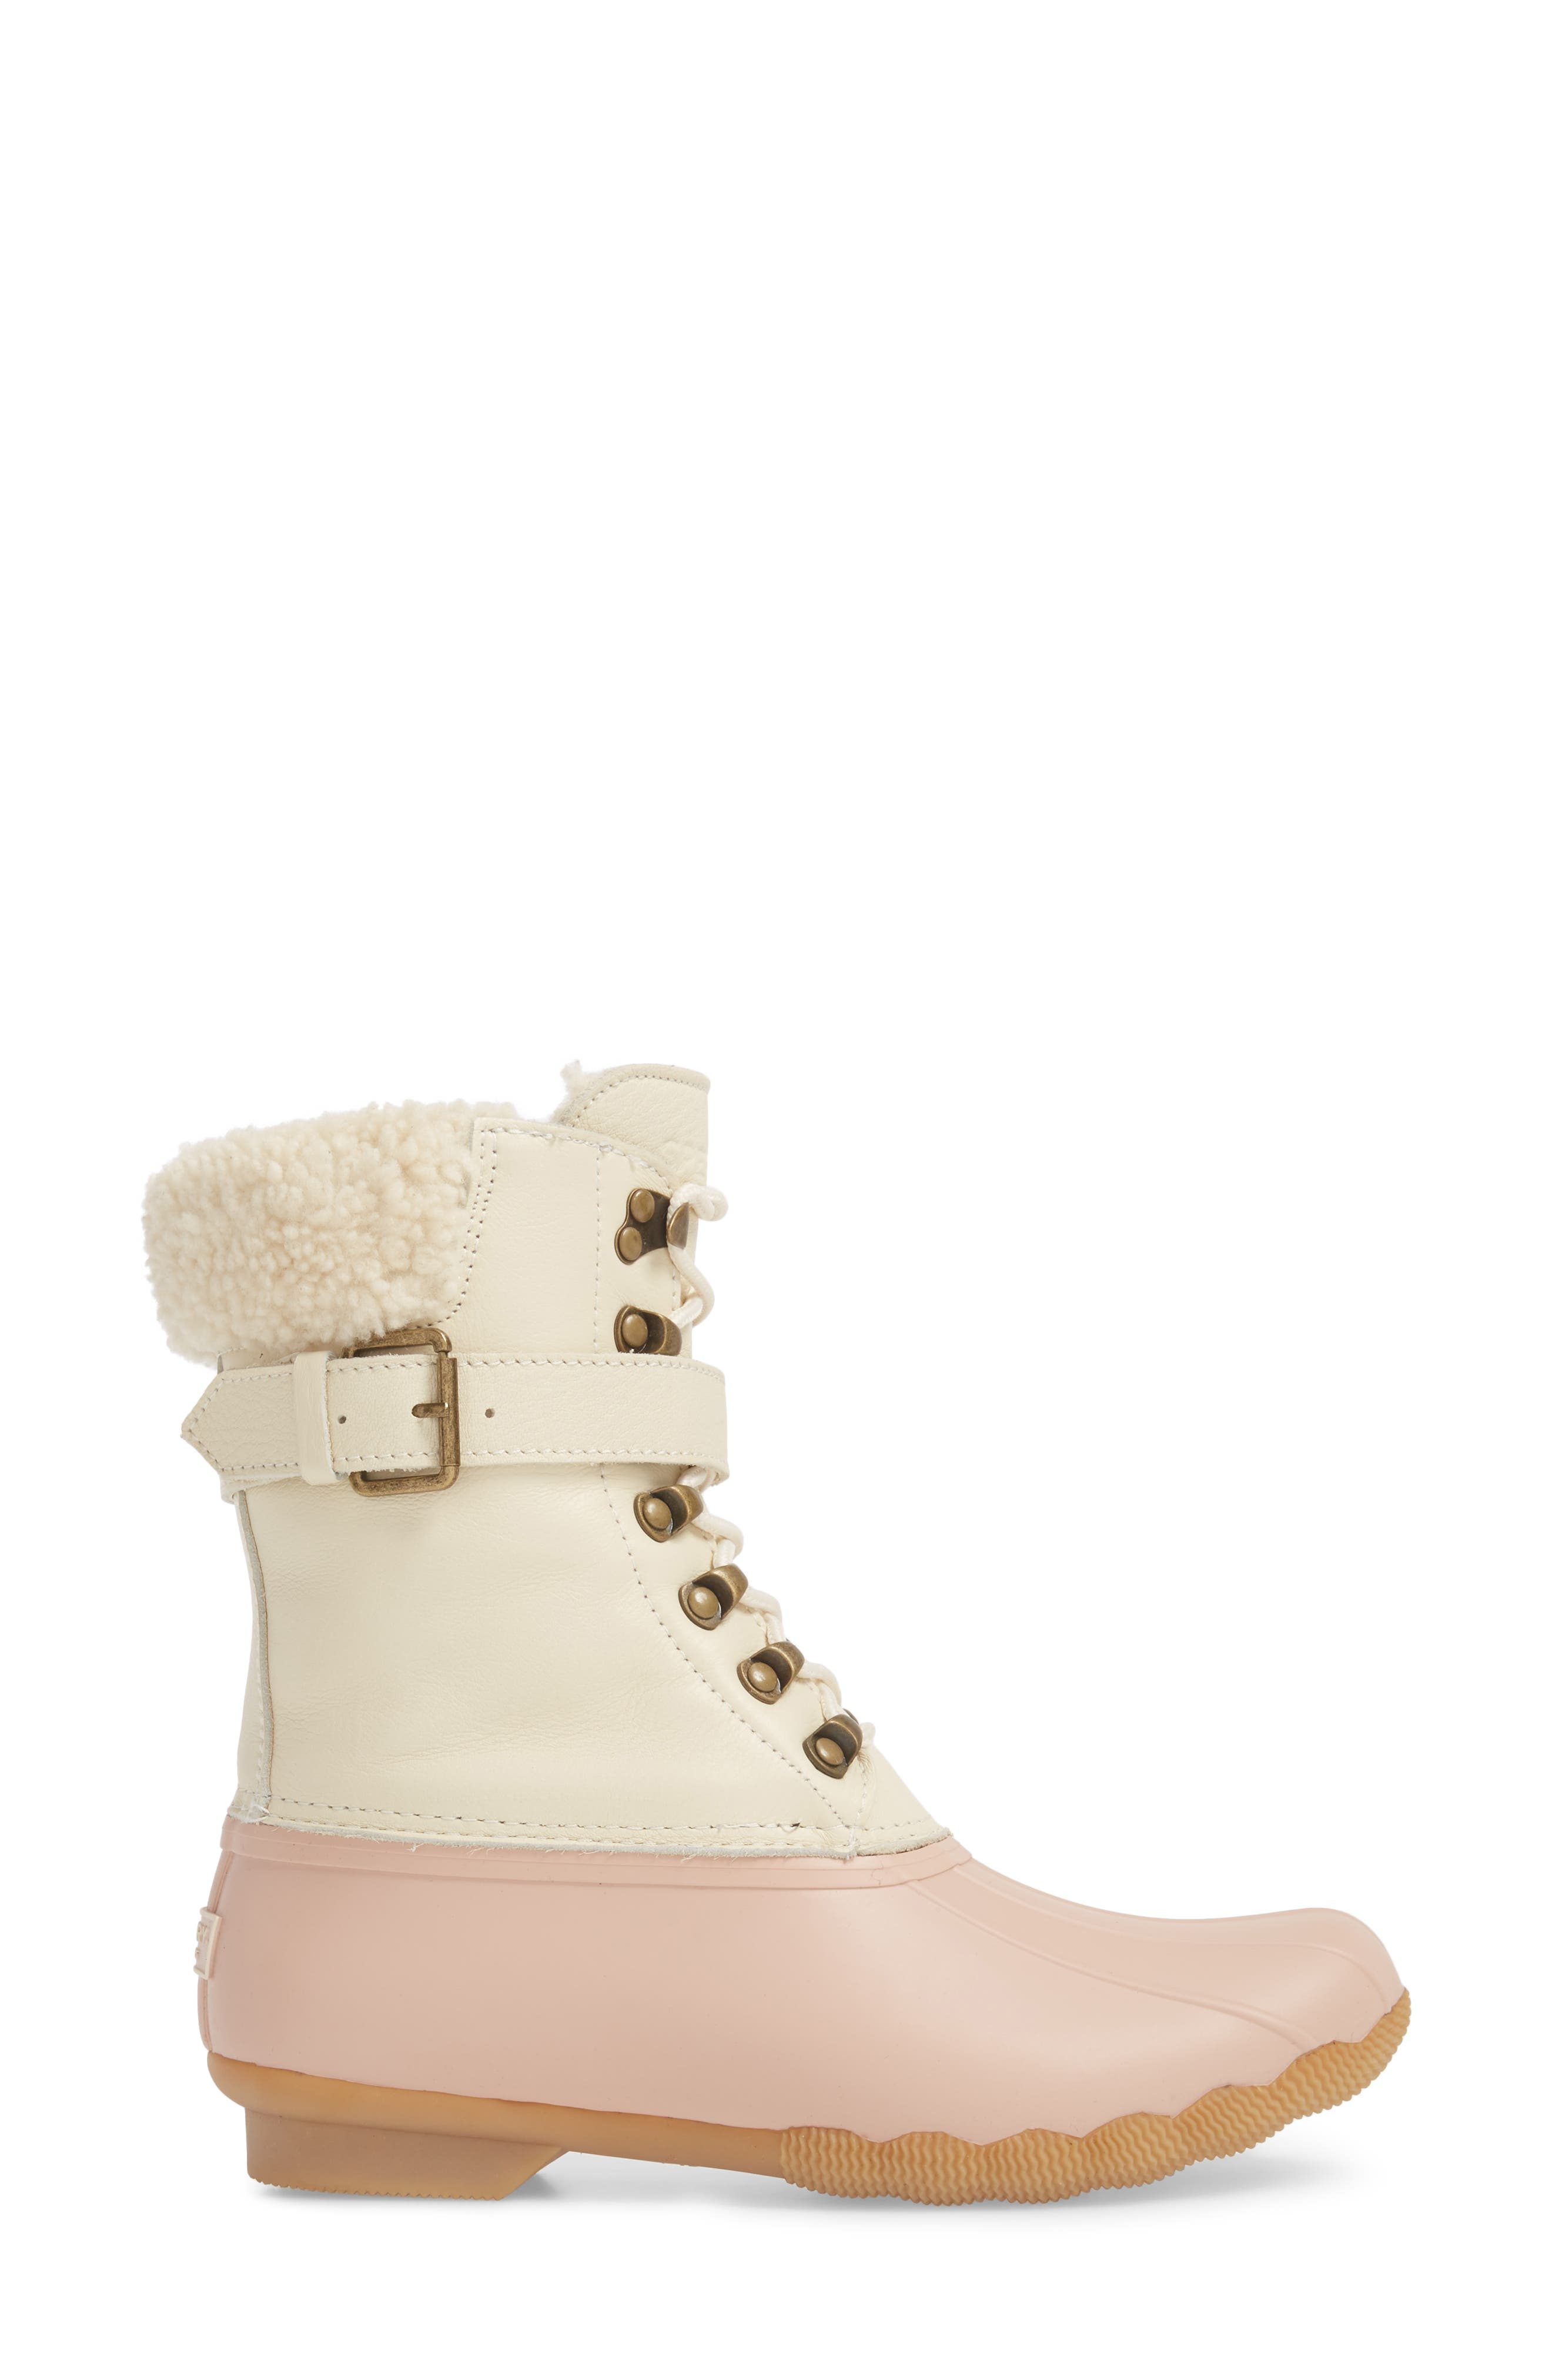 Shearwater Water-Resistant Genuine Shearling Lined Boot,                             Alternate thumbnail 12, color,